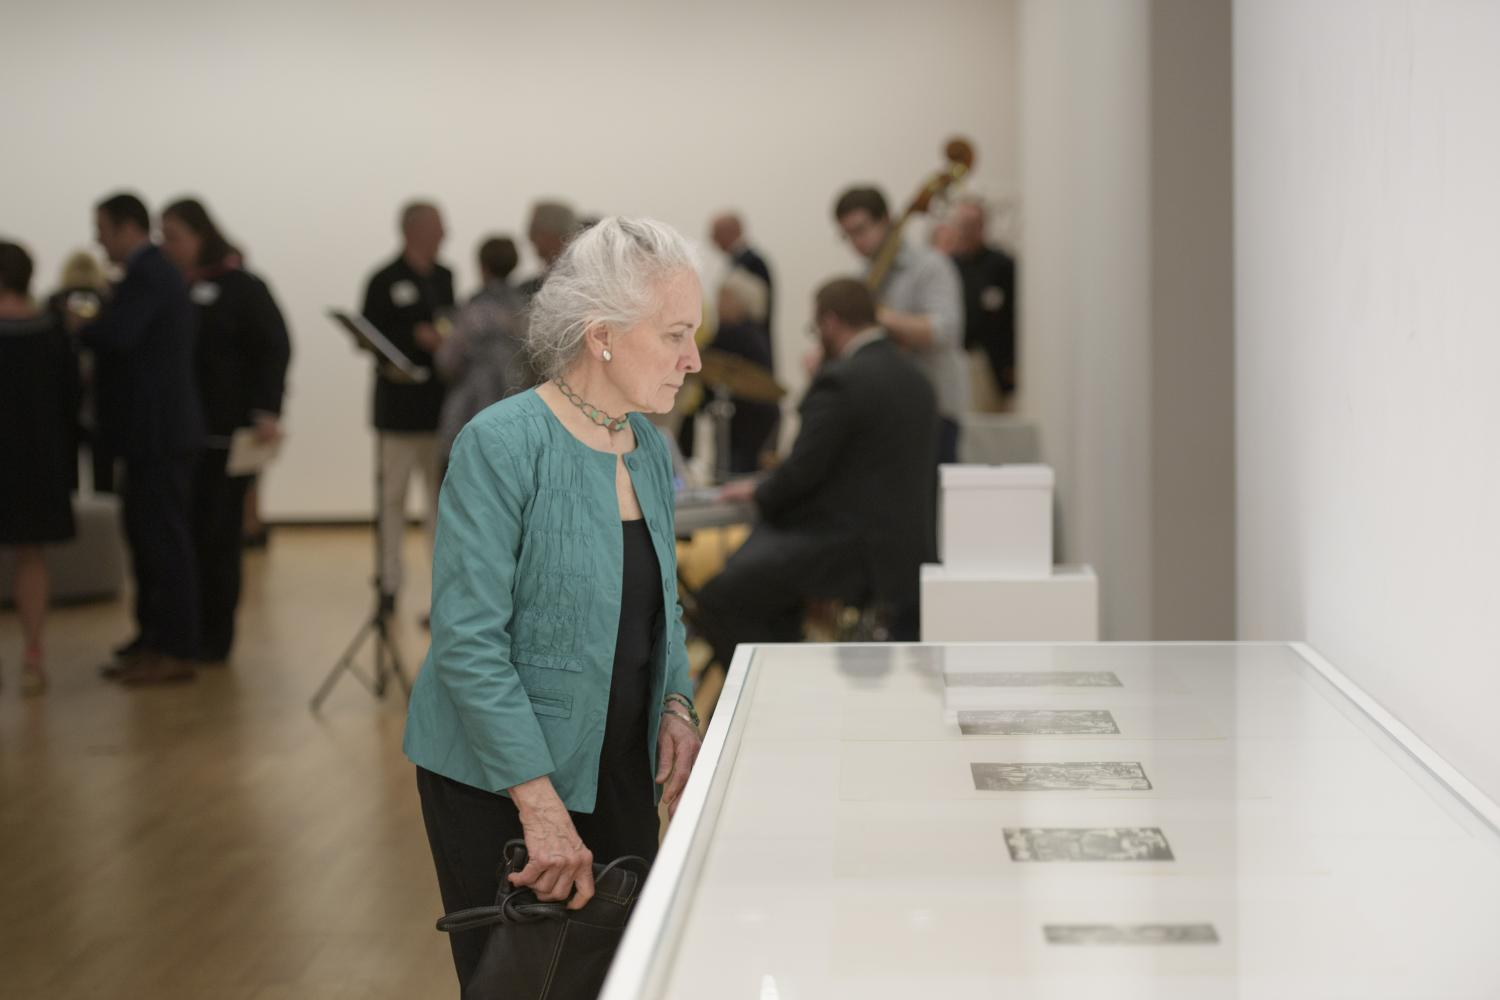 A guest views artwork by Hale Woodruff proposed for acquisition at the Acquired Taste Celebration at Krannert Art Museum, May 18, 2019. Photo by Della Perrone